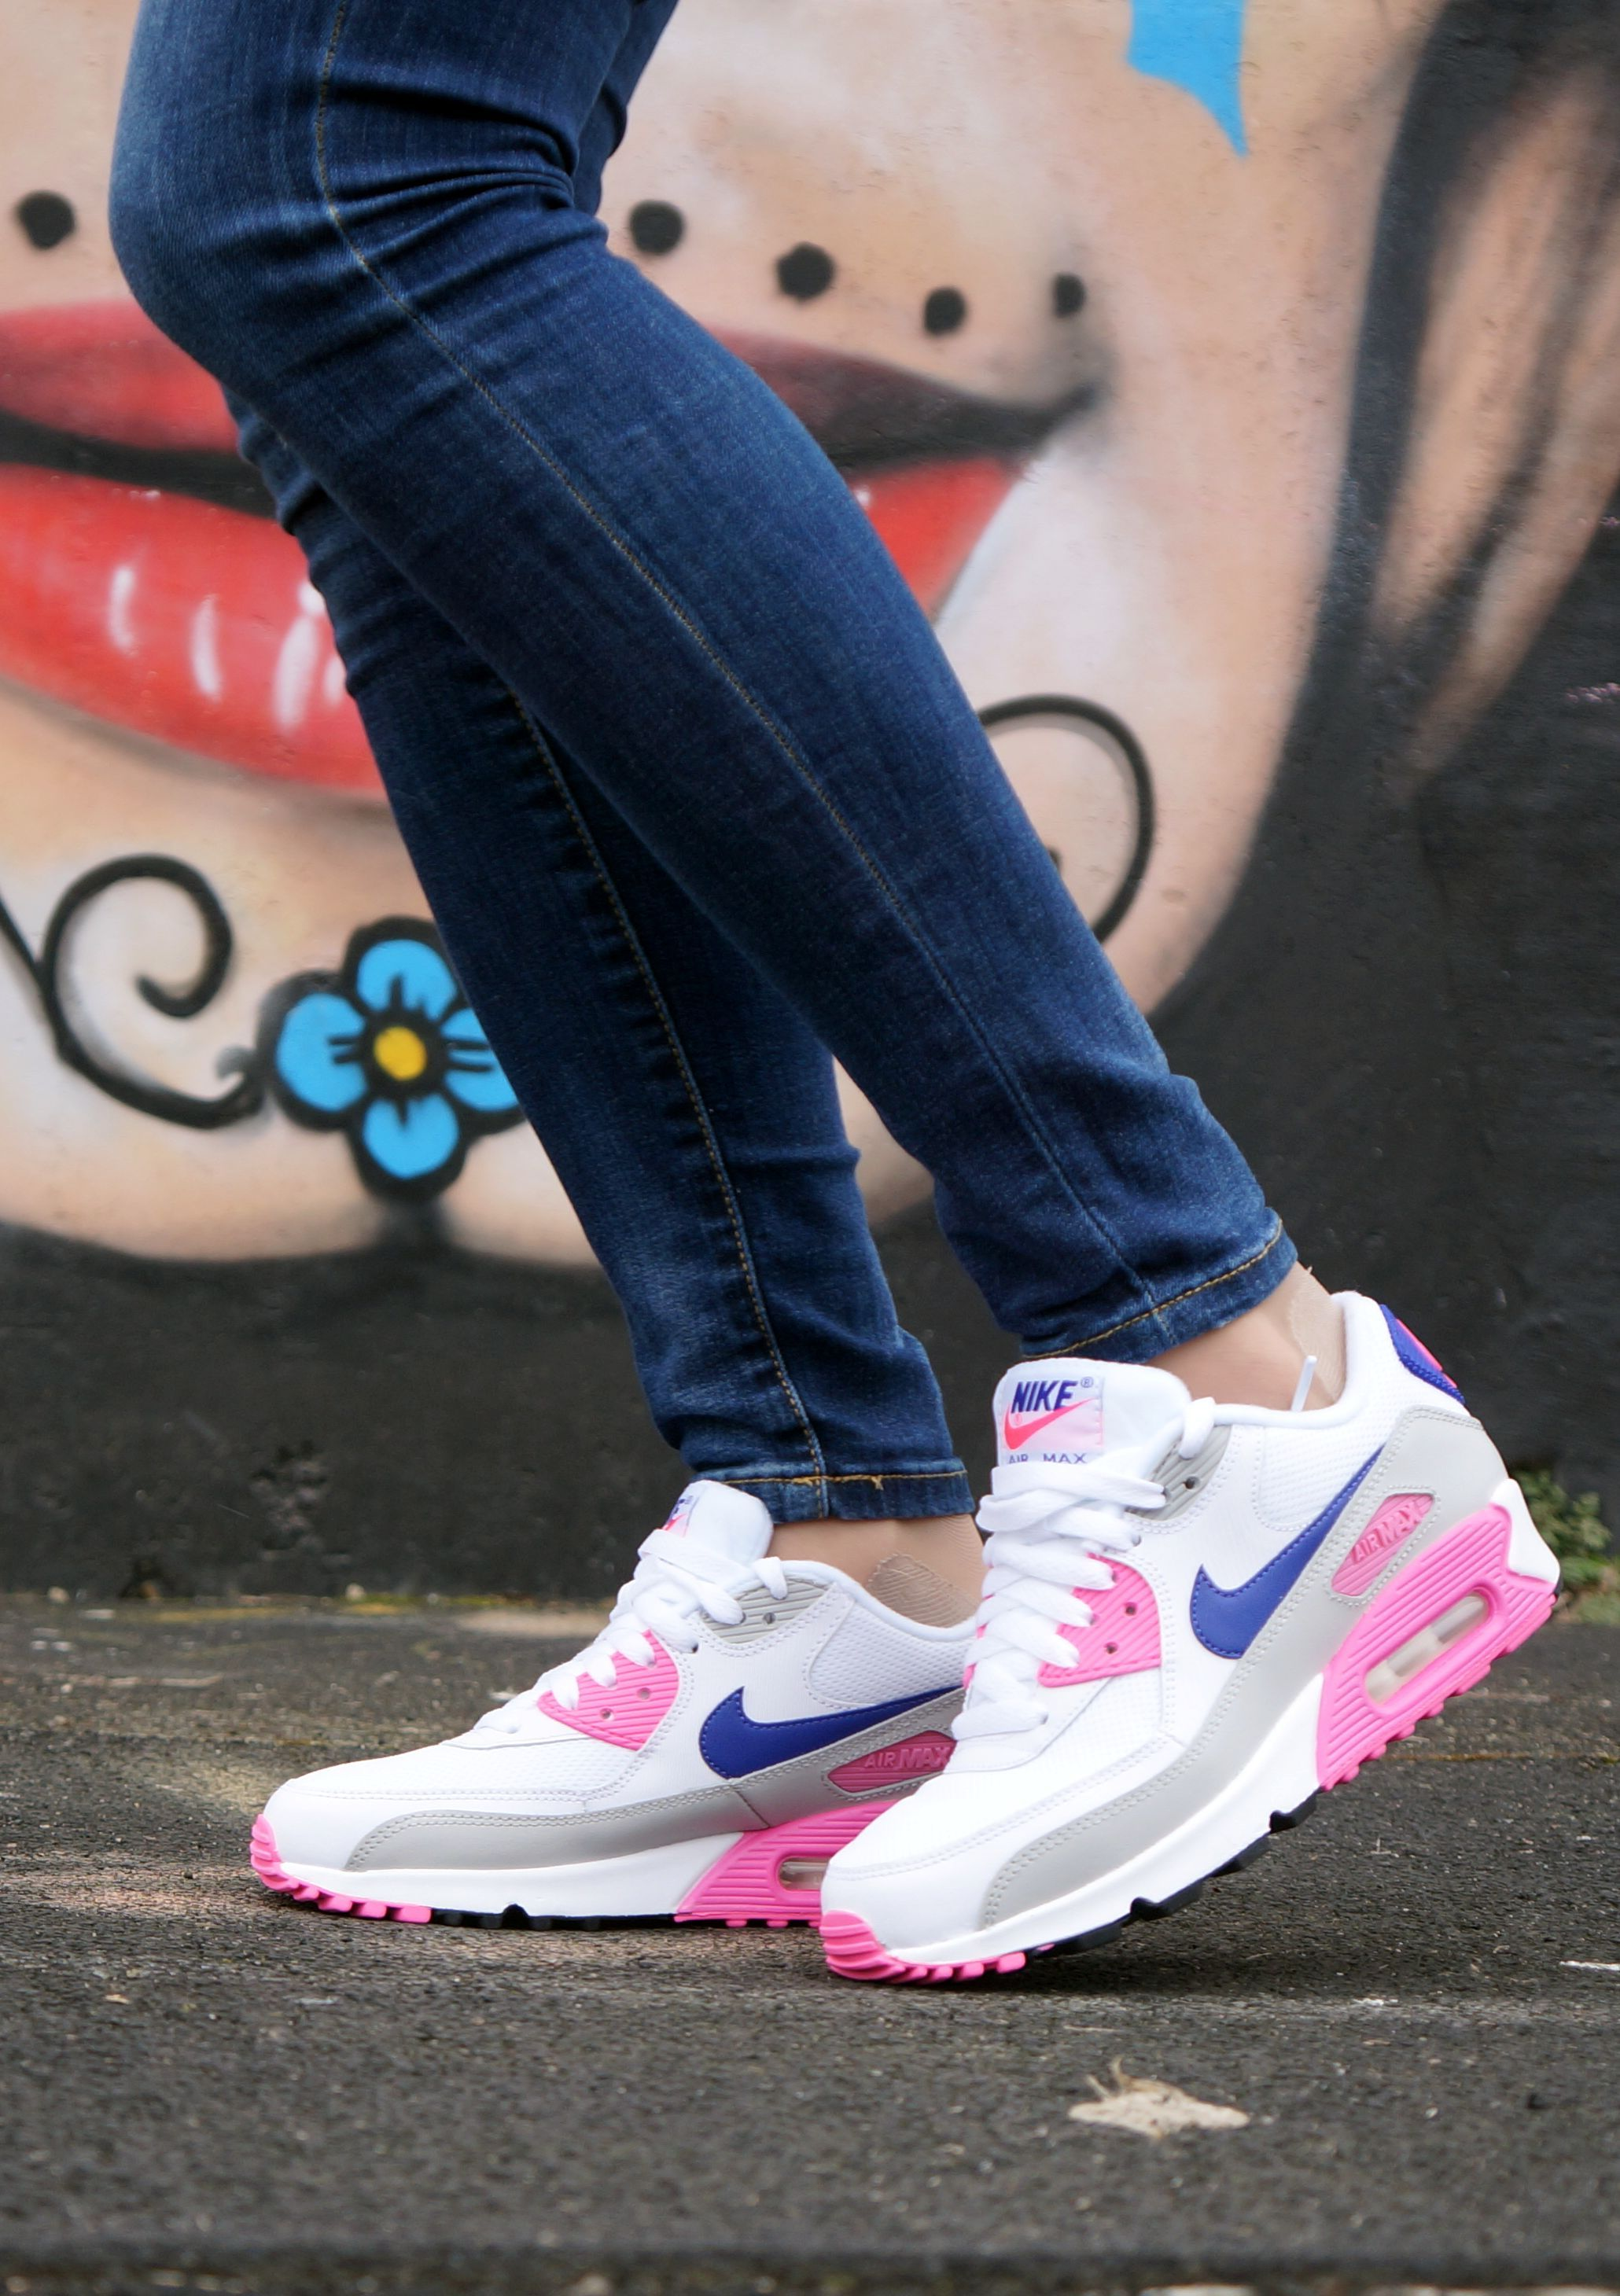 nike air max grey and pink womens dress